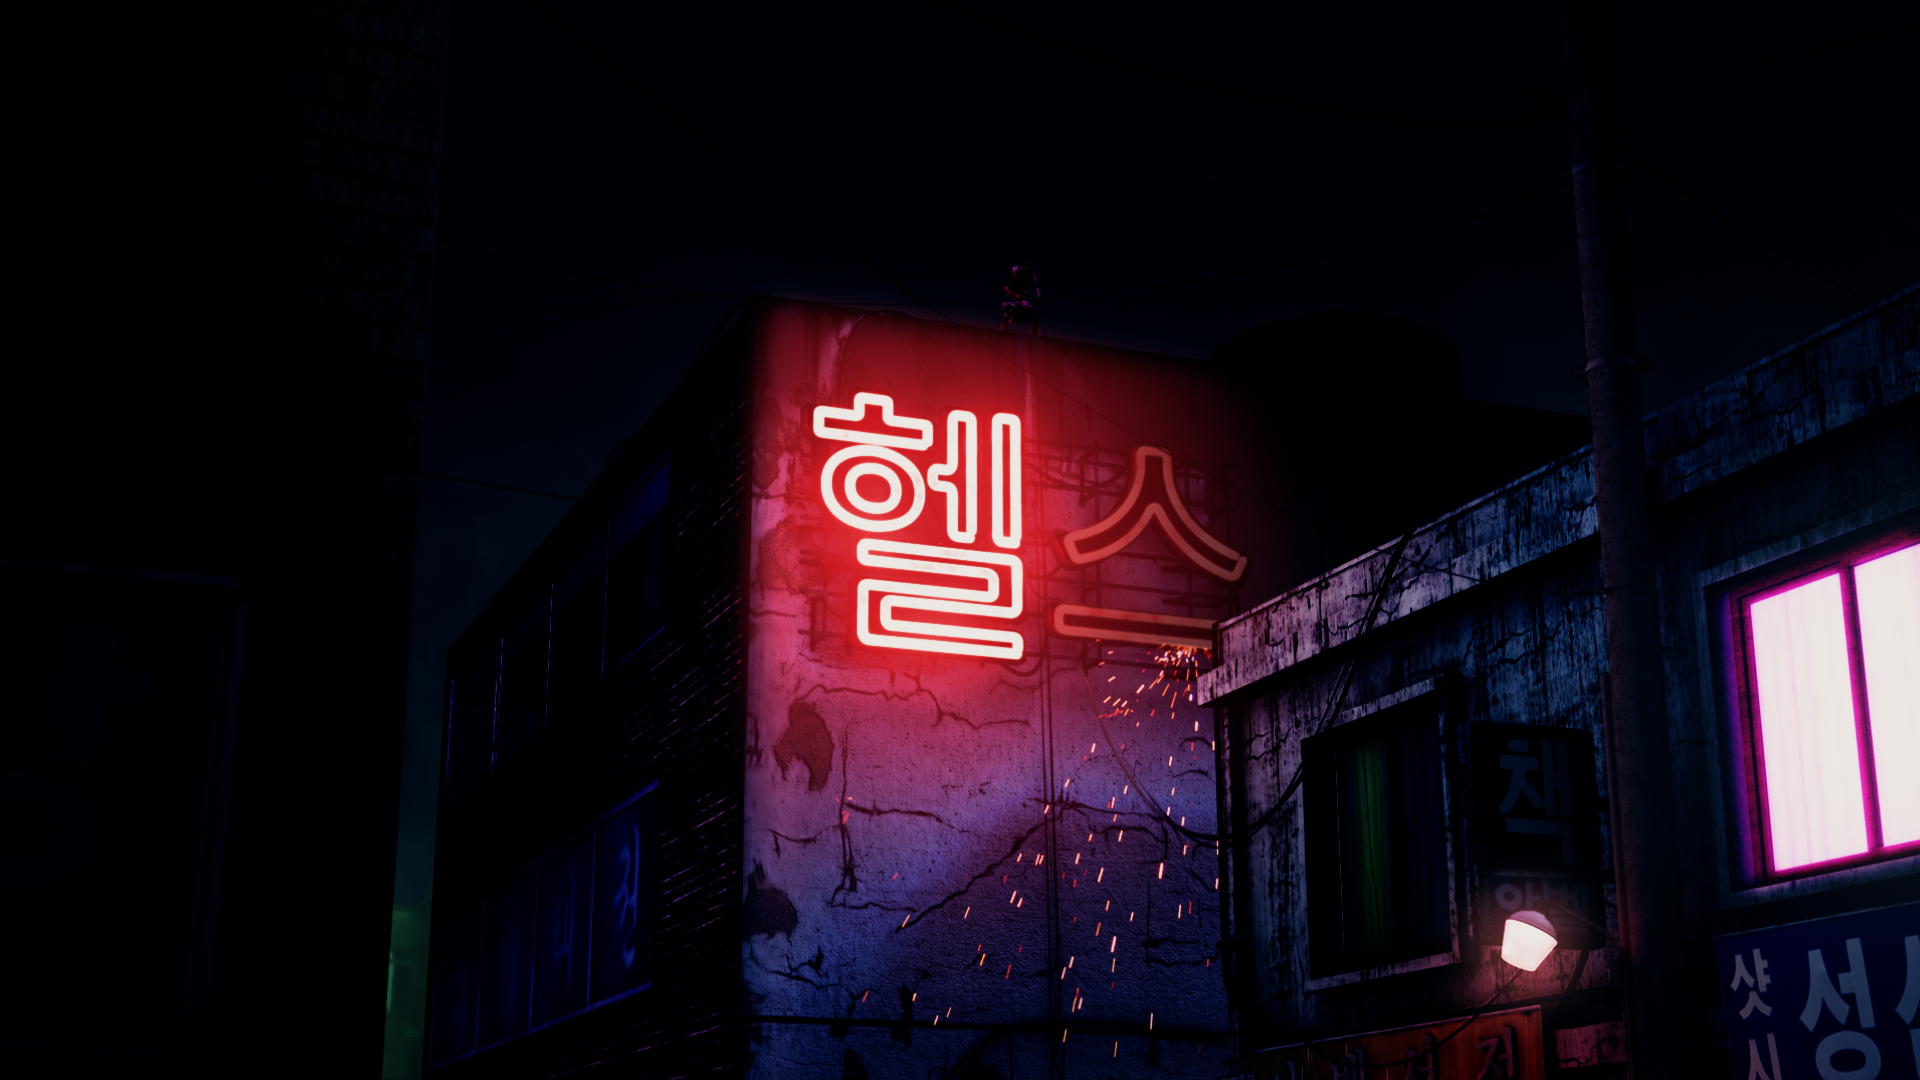 All Scene_png_00256.png